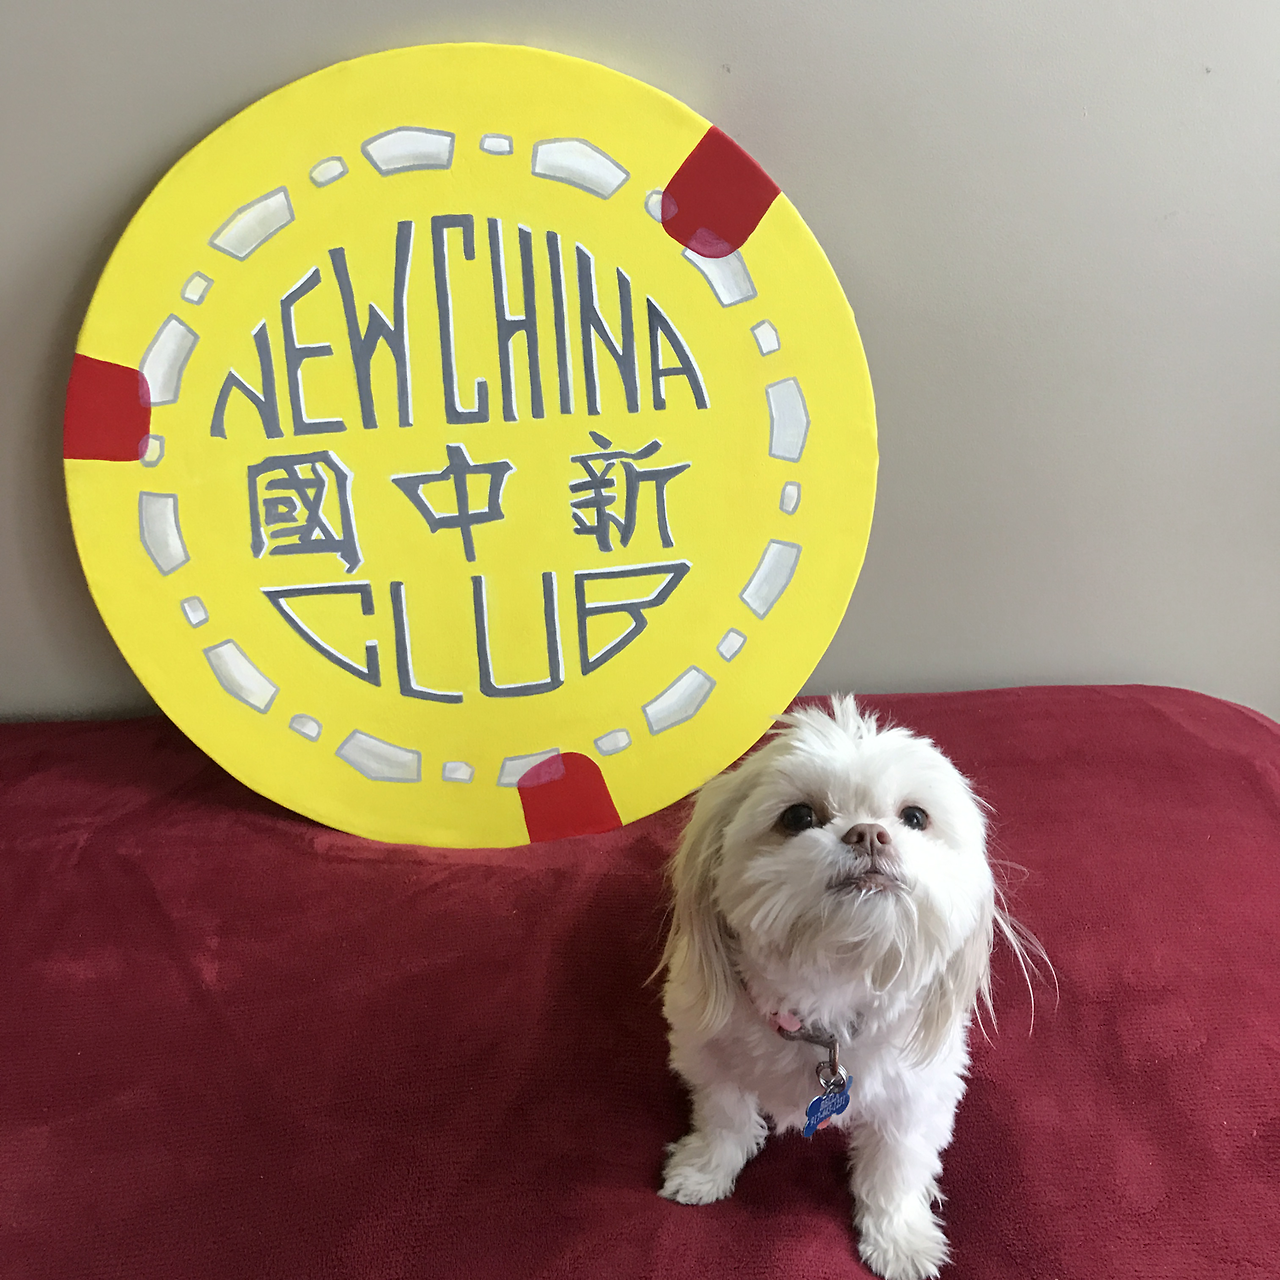 """The New China Club opened in Reno in 1952 by returning WWII serviceman, Bill Fong. Games like Keno, fan tan  and pai gow became very popular in this casino and eventually a """"Fong Open"""" for Asian and black gamblers attracted  celebrity guests such as Joe Lewis and Jesse Owens.  This is my latest giant casino chip that I have painted and it is preciously guarded by my little Bella, who will nibble at your feet if you try to touch the art.  Please don't touch the art……   More of my casino chips can be found here:   https://www.victorspinelli.com/new-products/"""